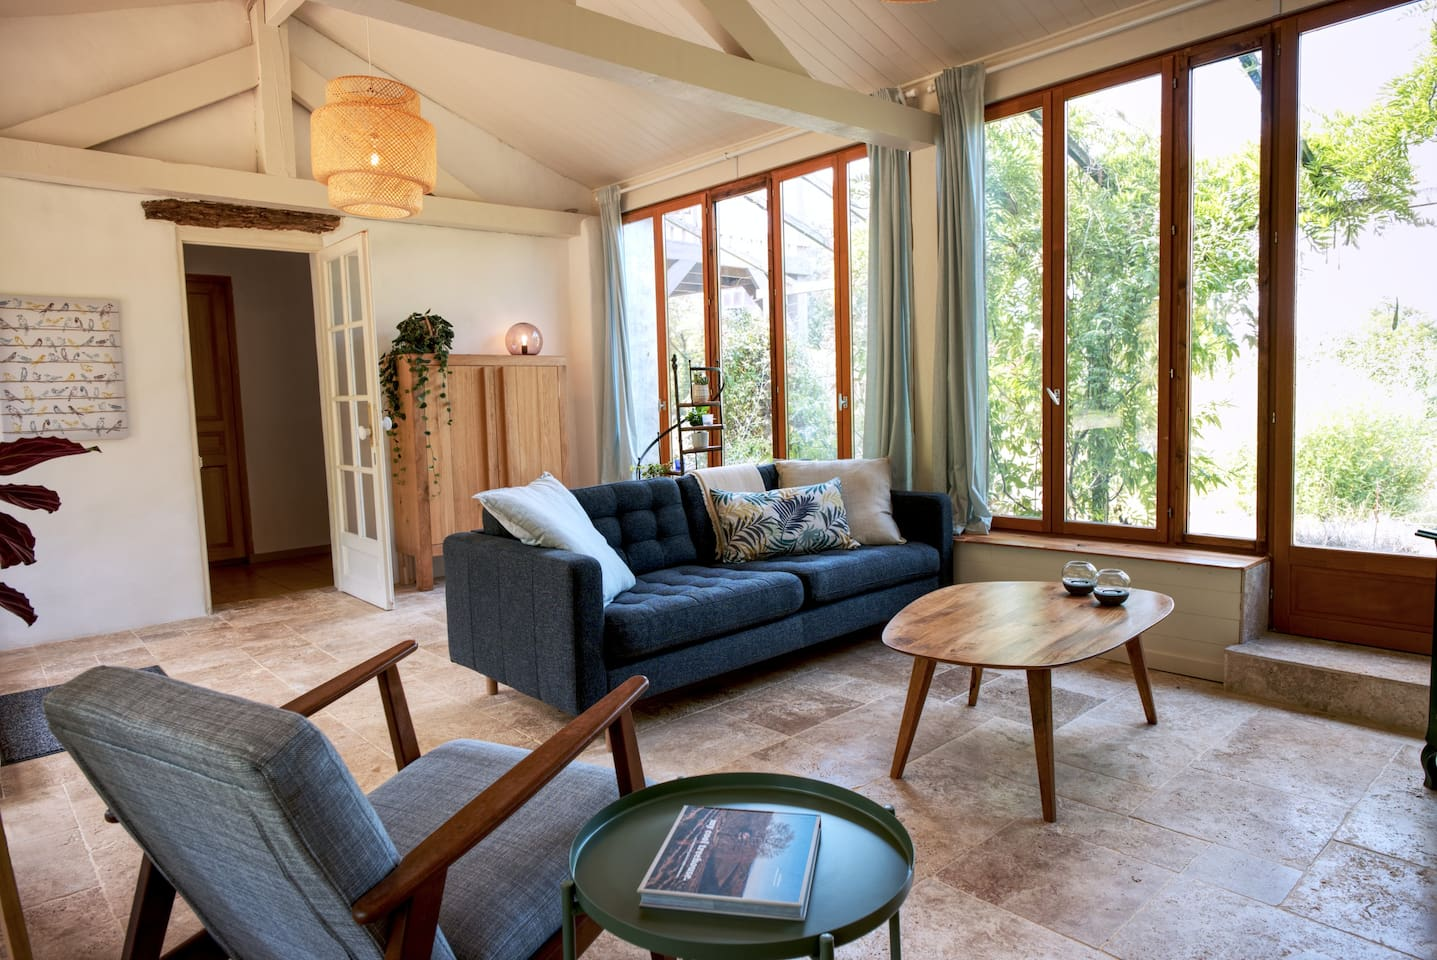 Lounge with bright and big windows overlooking the gardens